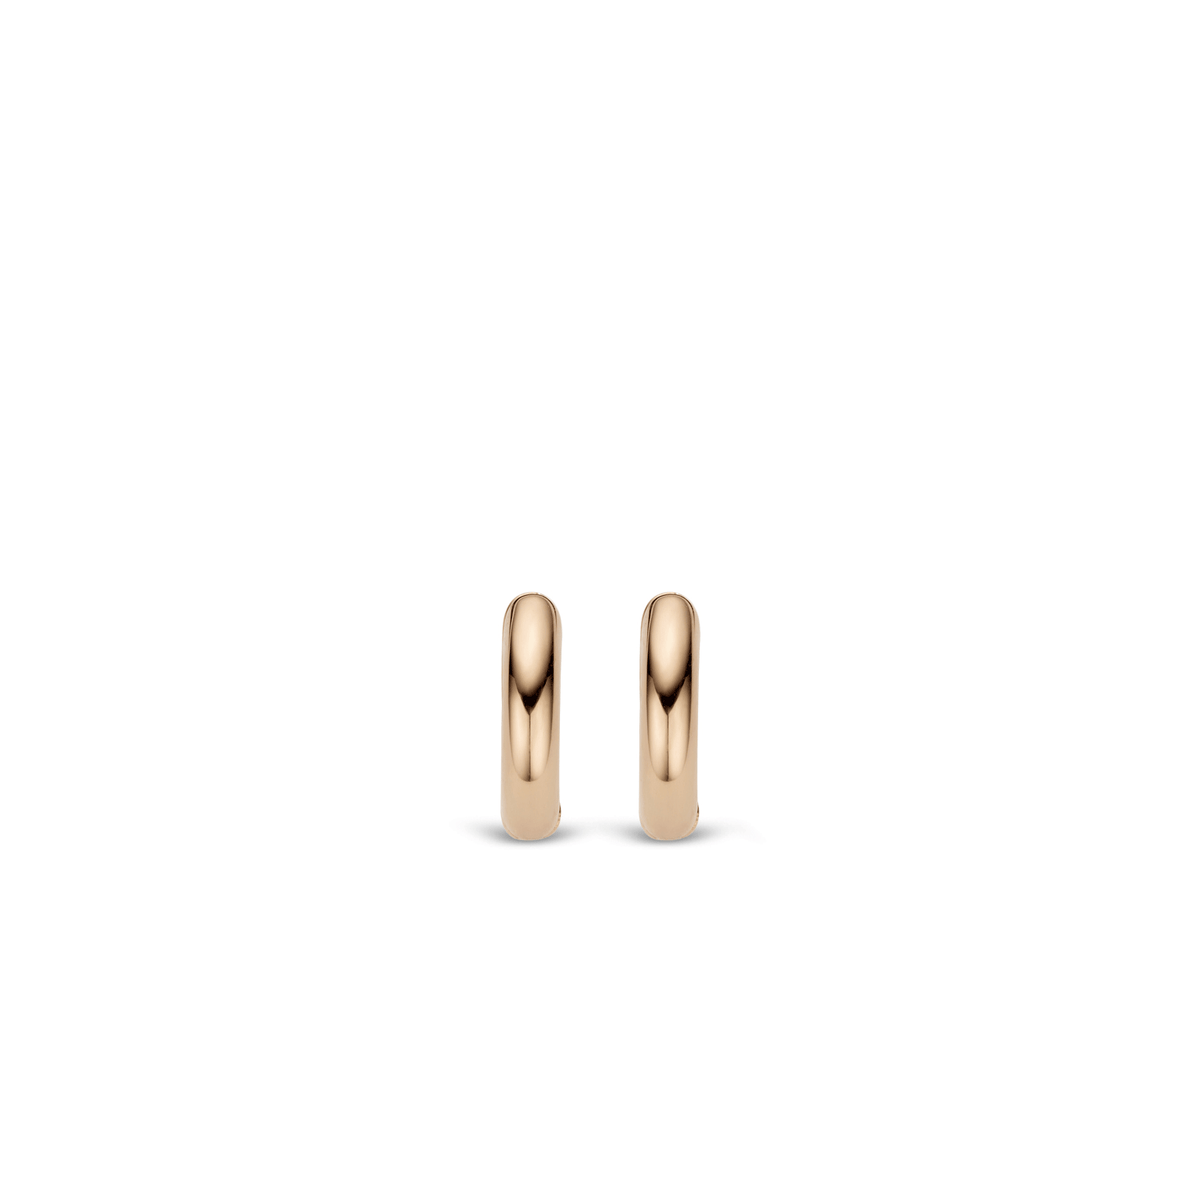 TI SENTO - Milano Earrings 7210RS